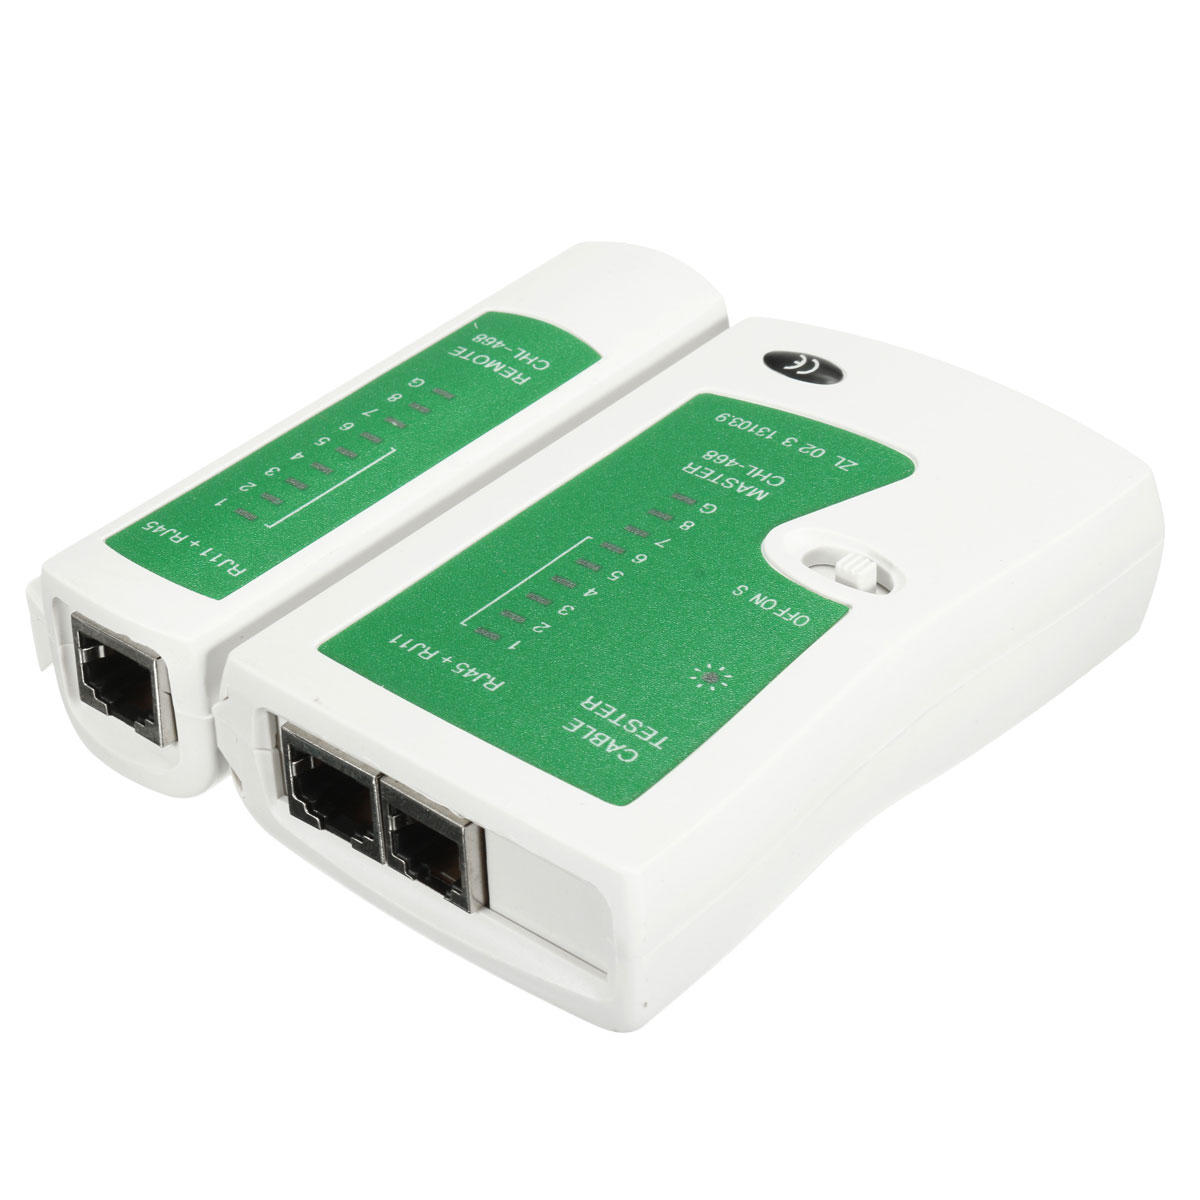 hight resolution of network cable tester for cat5 rj45 rj11 rj12 ethernet lan pc wire testing tool cod